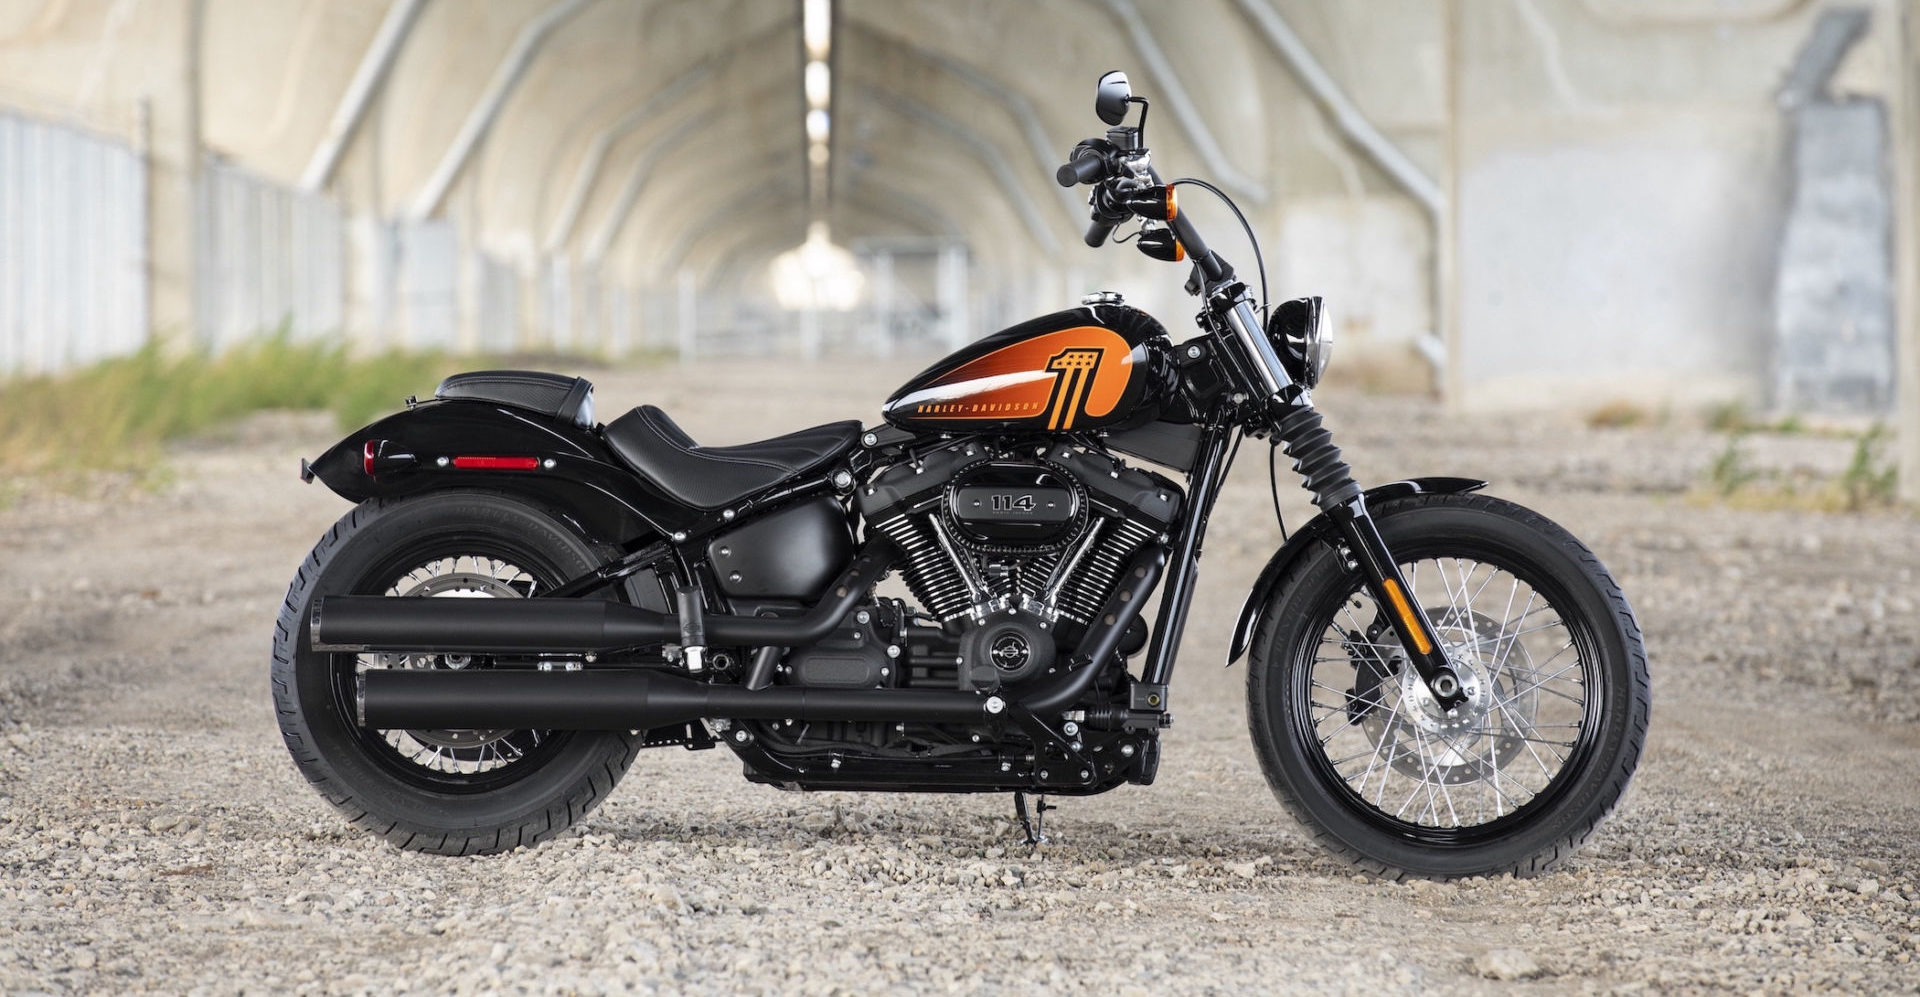 A 2021 Harley-Davidson Street Bob 114. Photo courtesy Harley-Davidson.